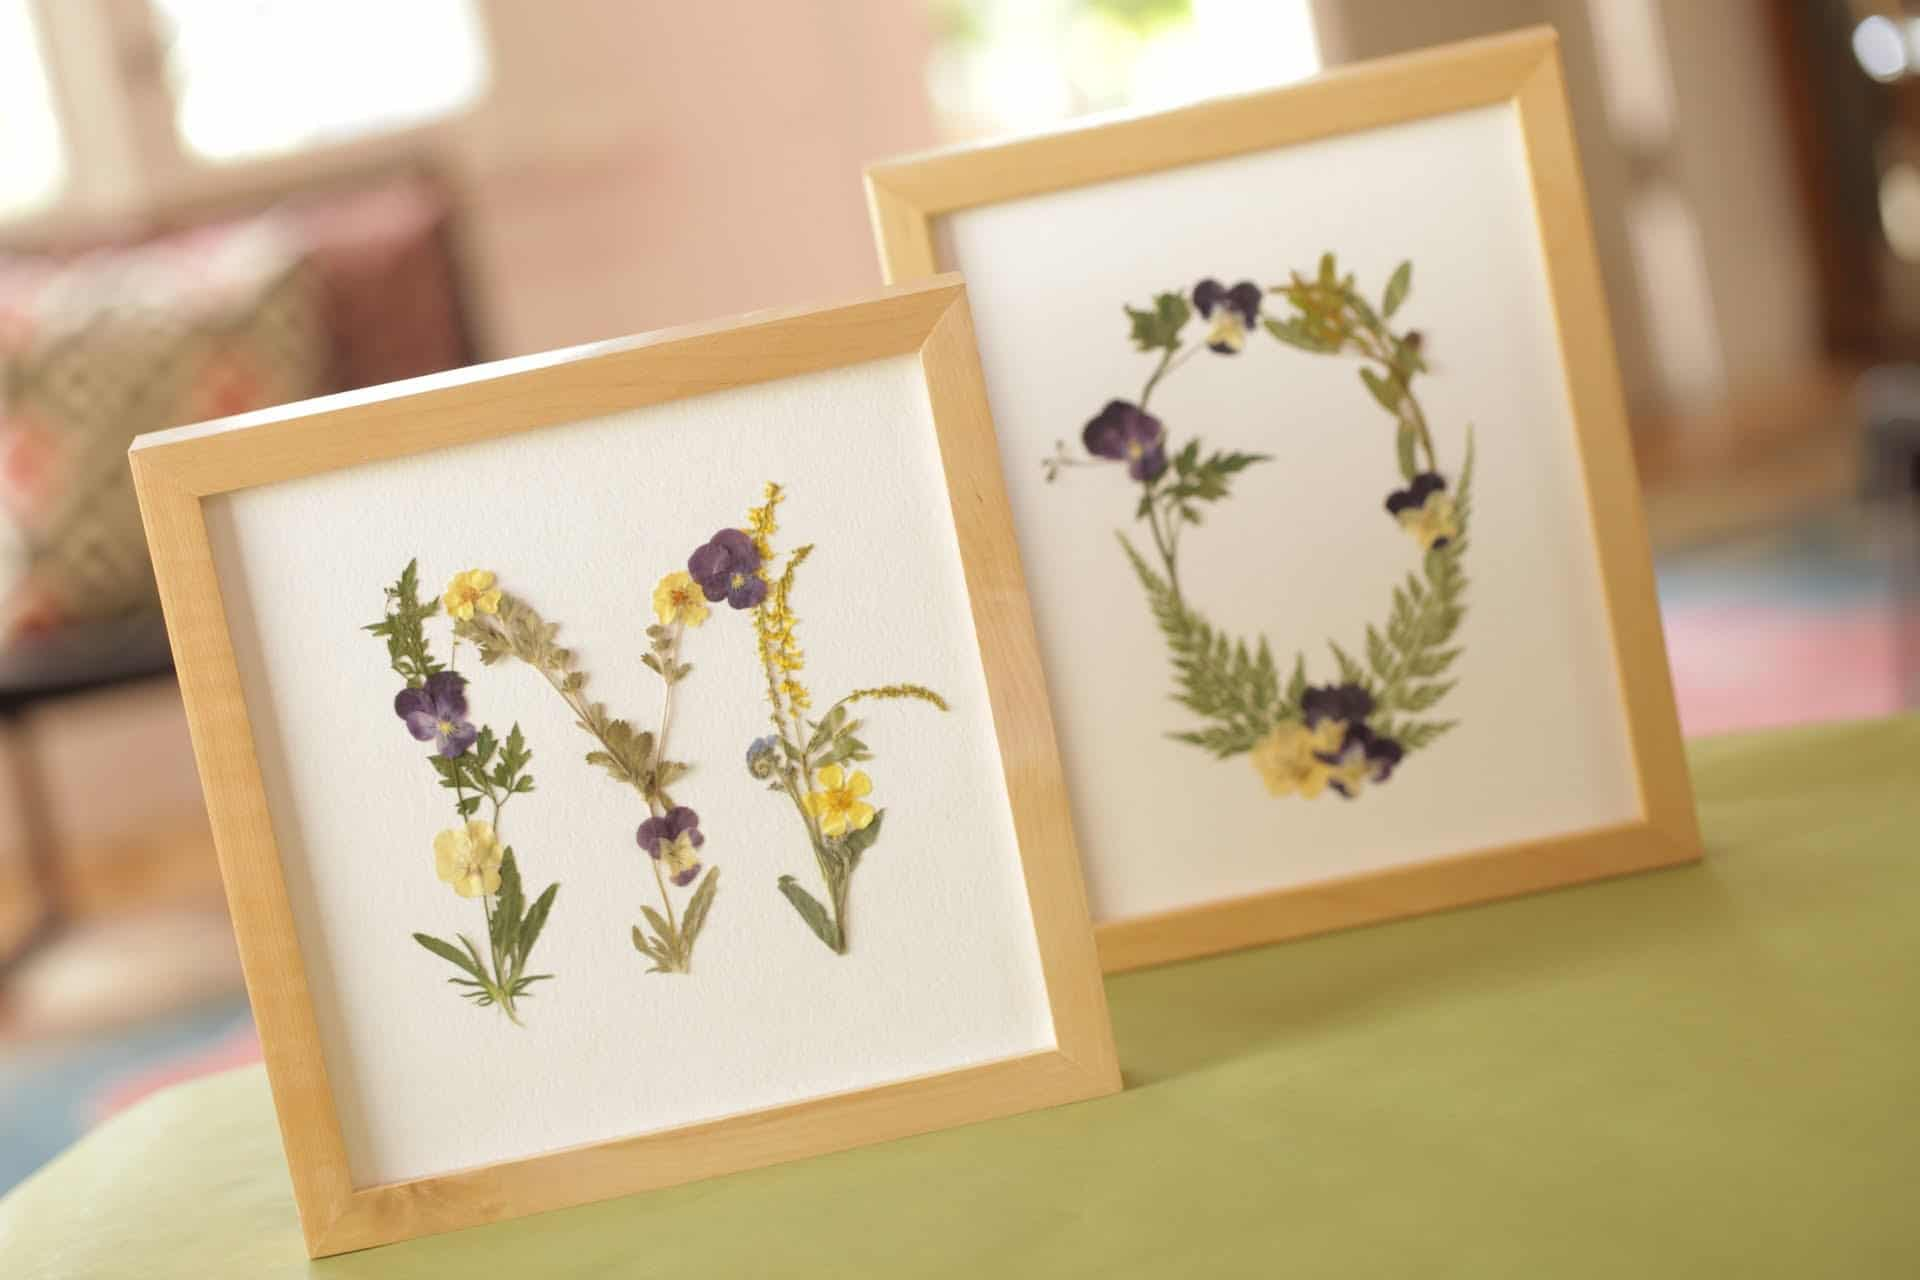 Framed pressed flower initials